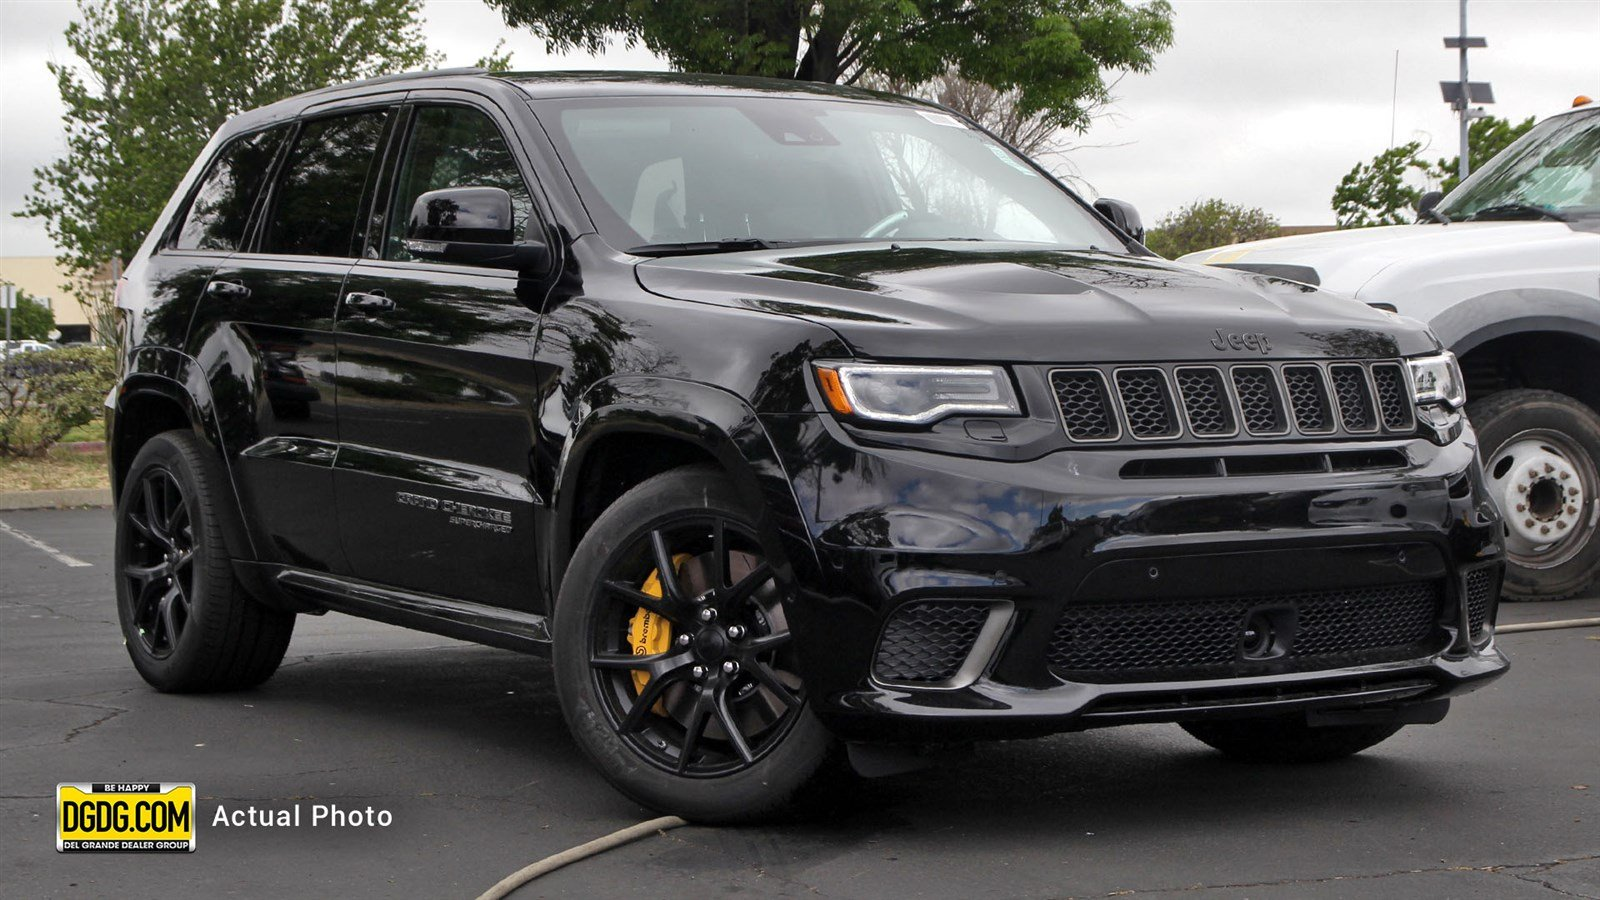 71 The Jeep Grand Cherokee Review and Release date